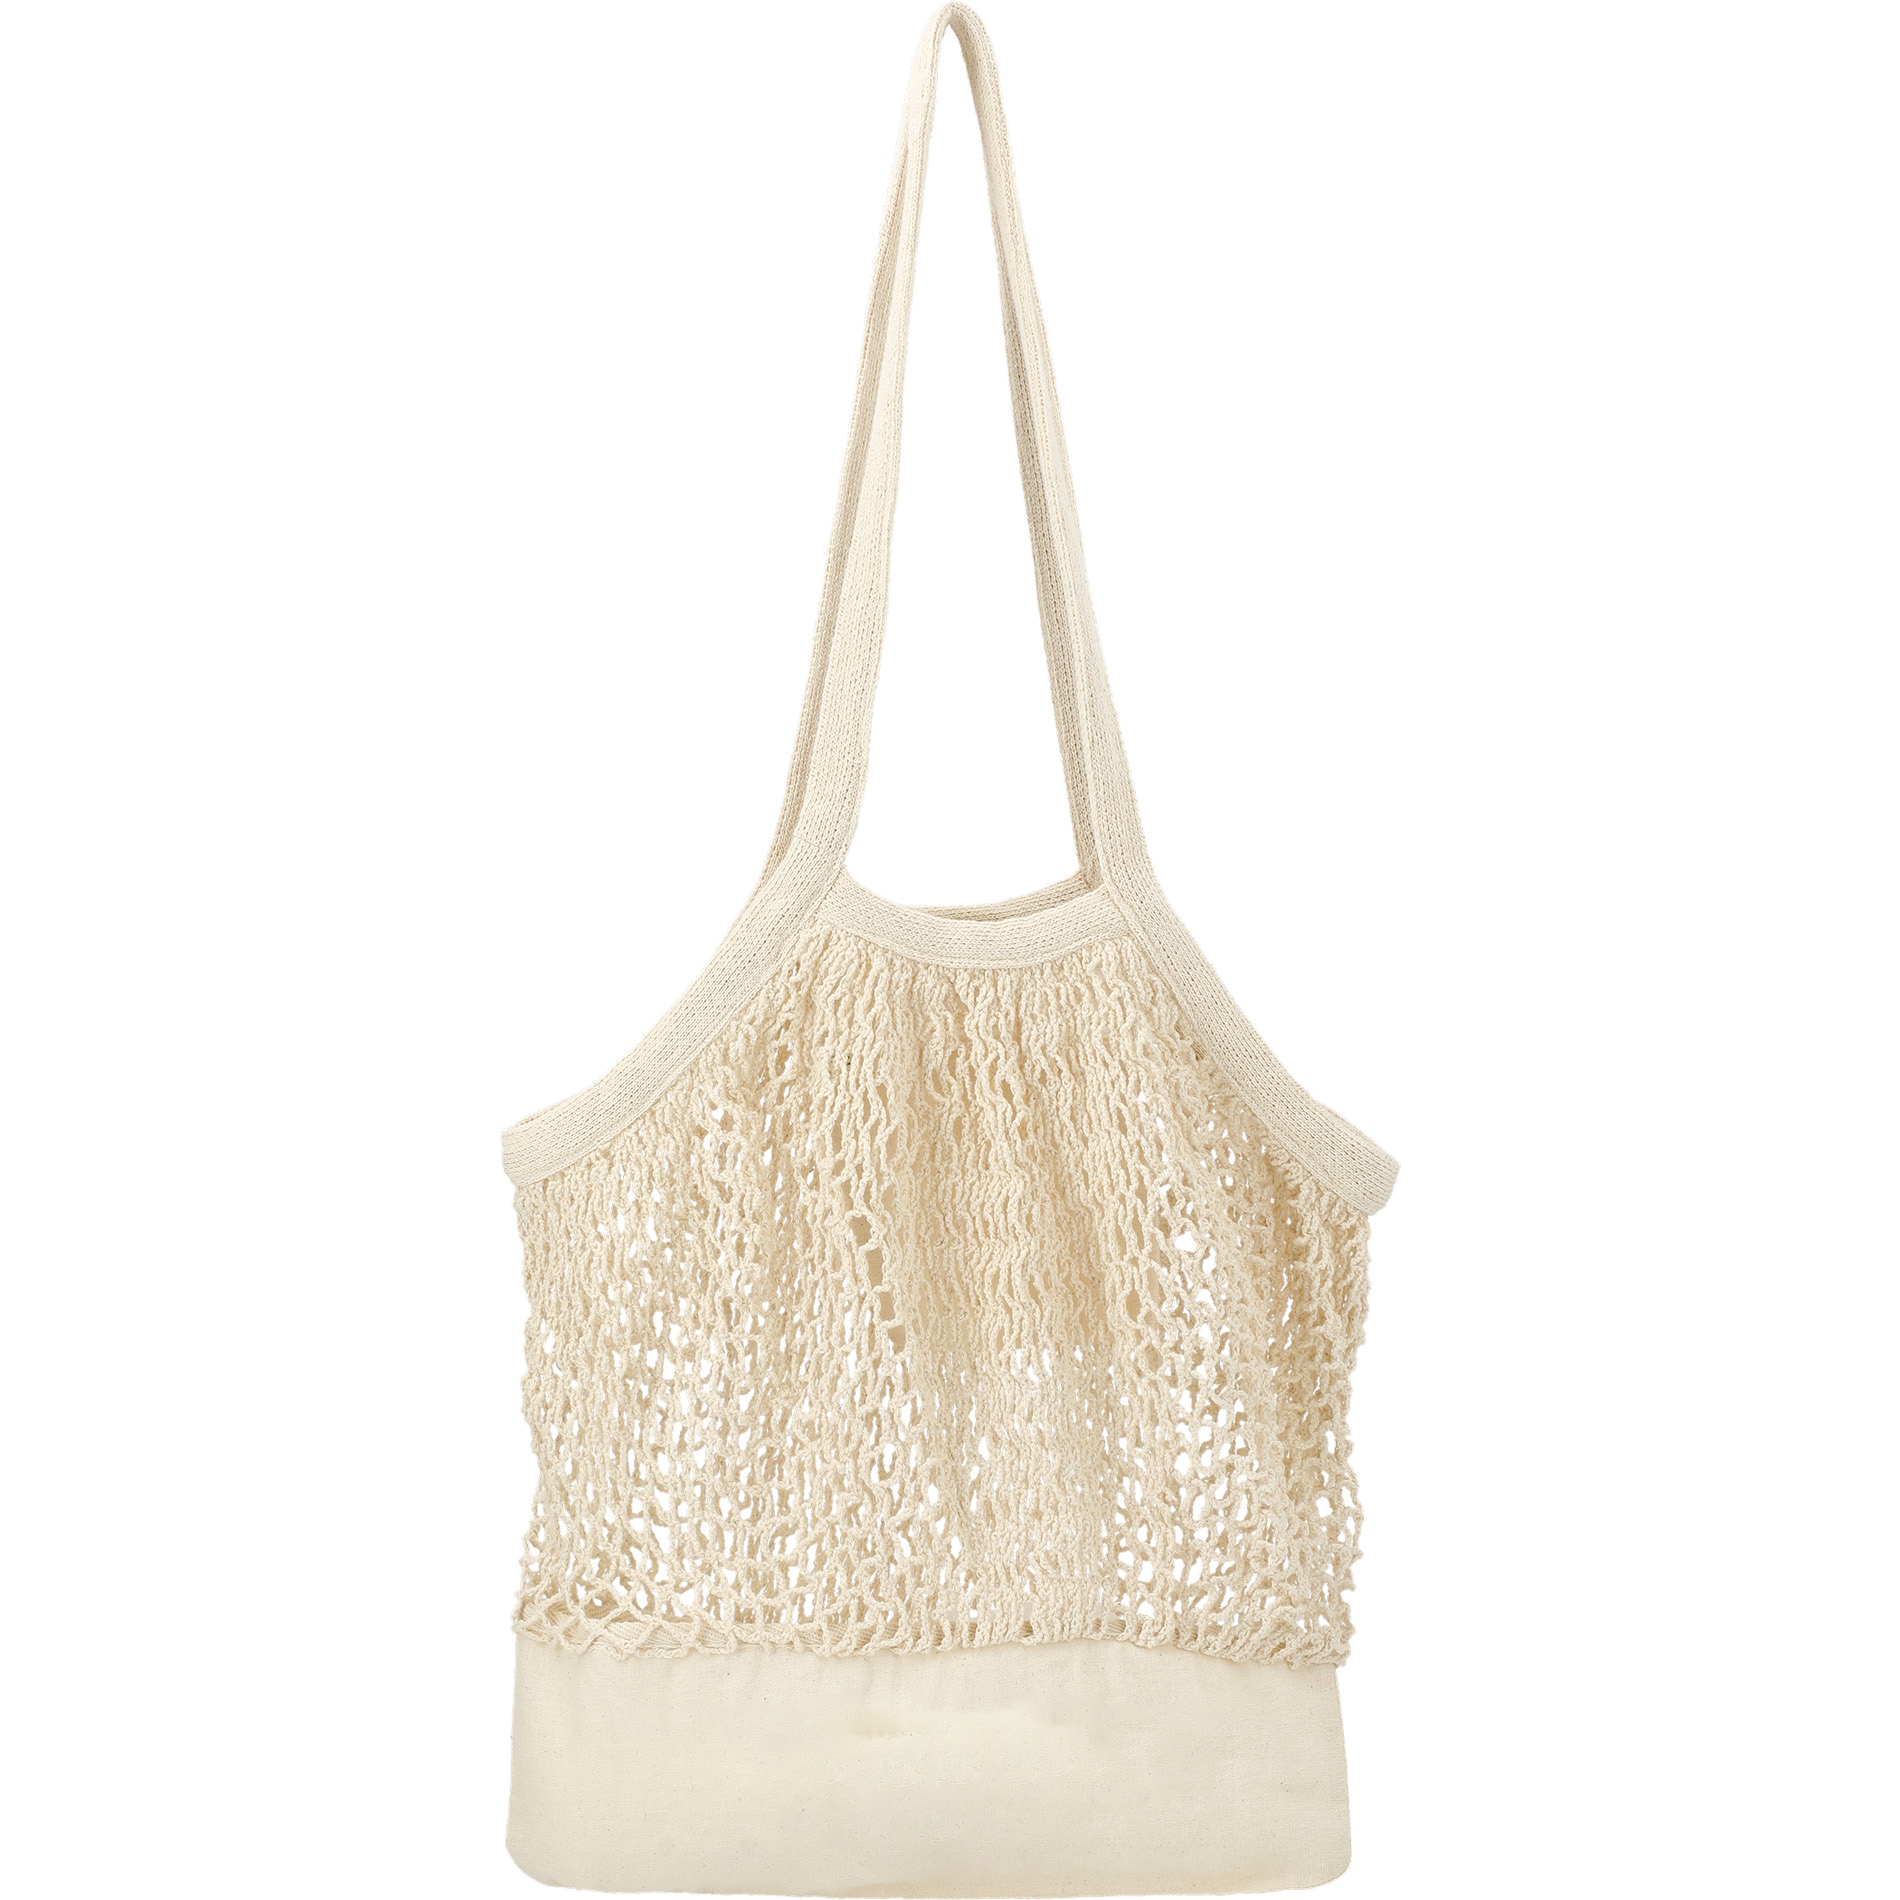 LEEDS 7900-97 - Riviera Cotton Mesh Convention Tote